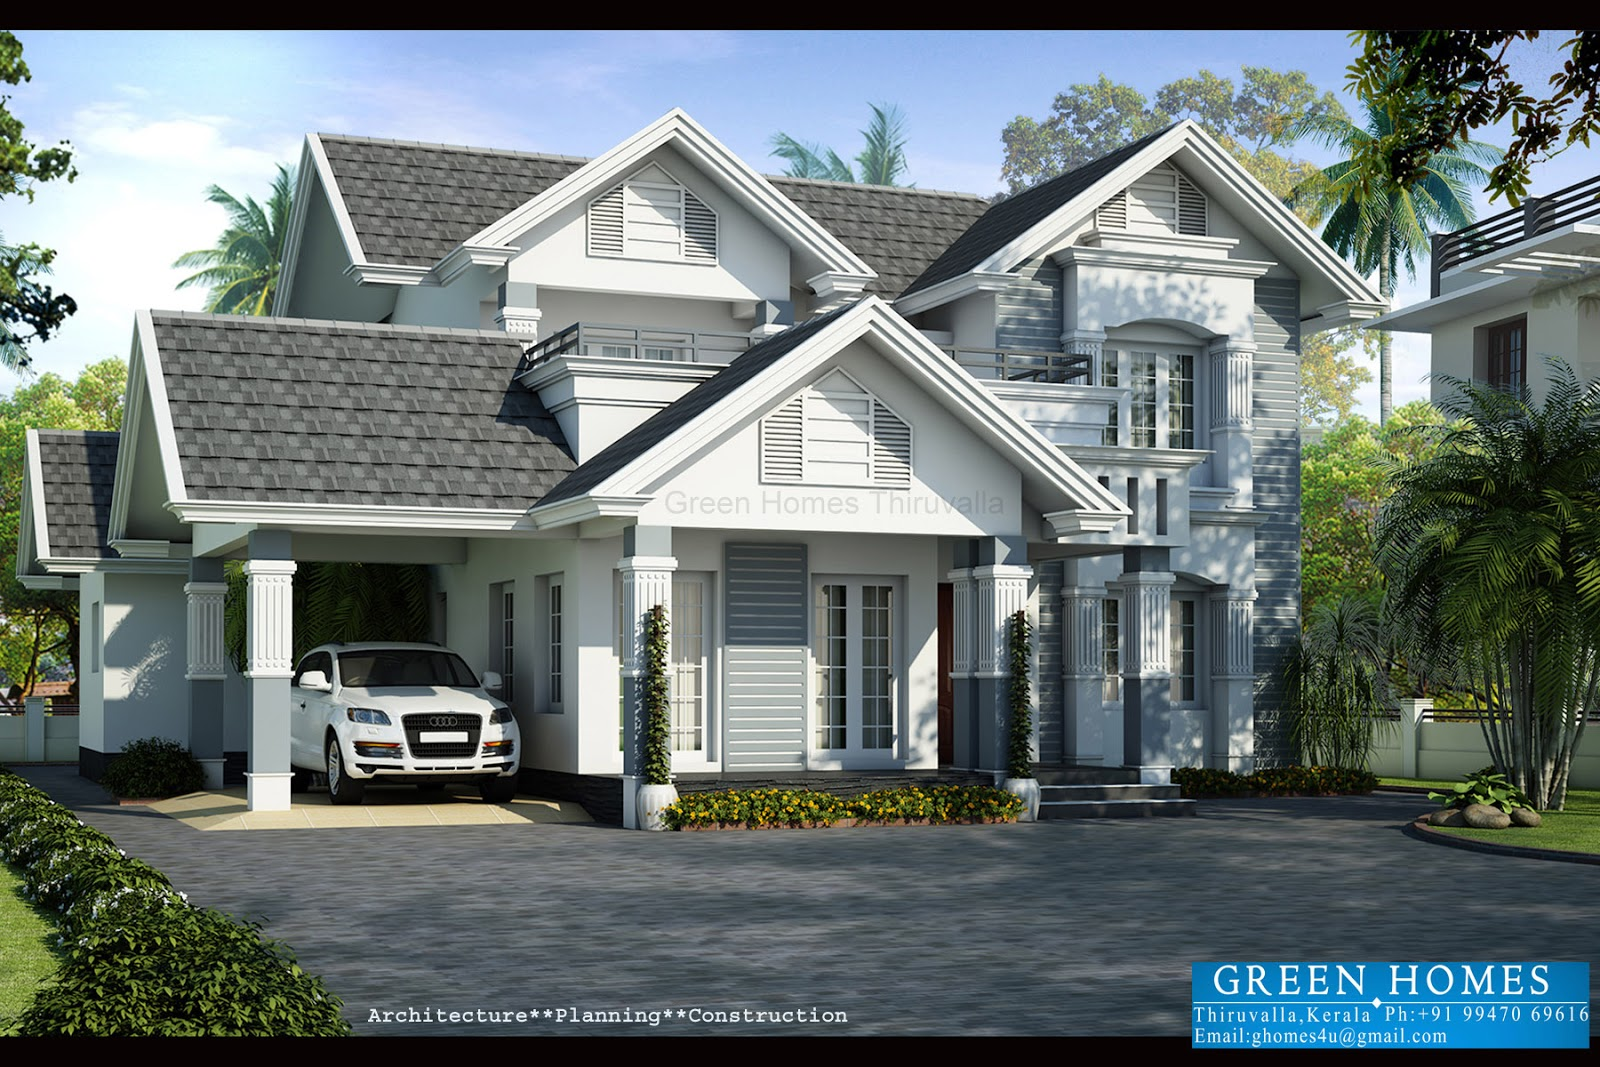 Green homes august 2013 for New style house